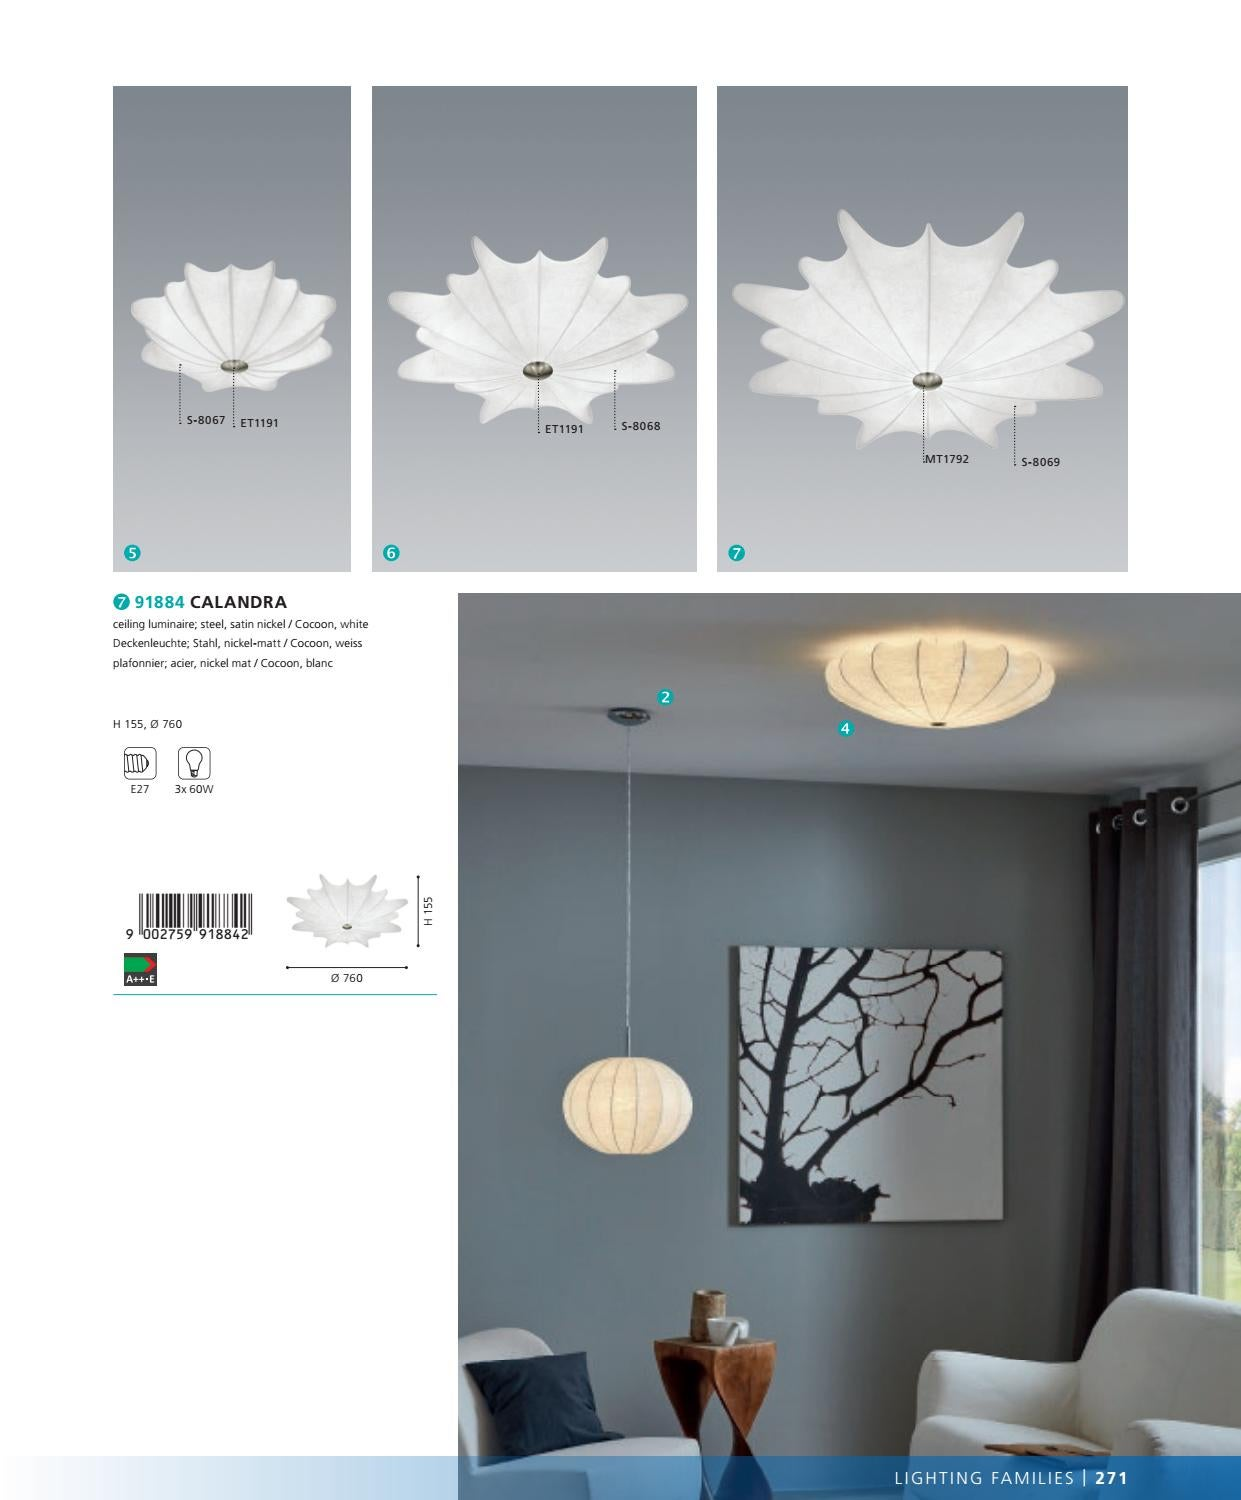 Wischtechnik Türkis Eglo Interior Lighting 2016 2017 Part4 By Larsa Lighting Issuu